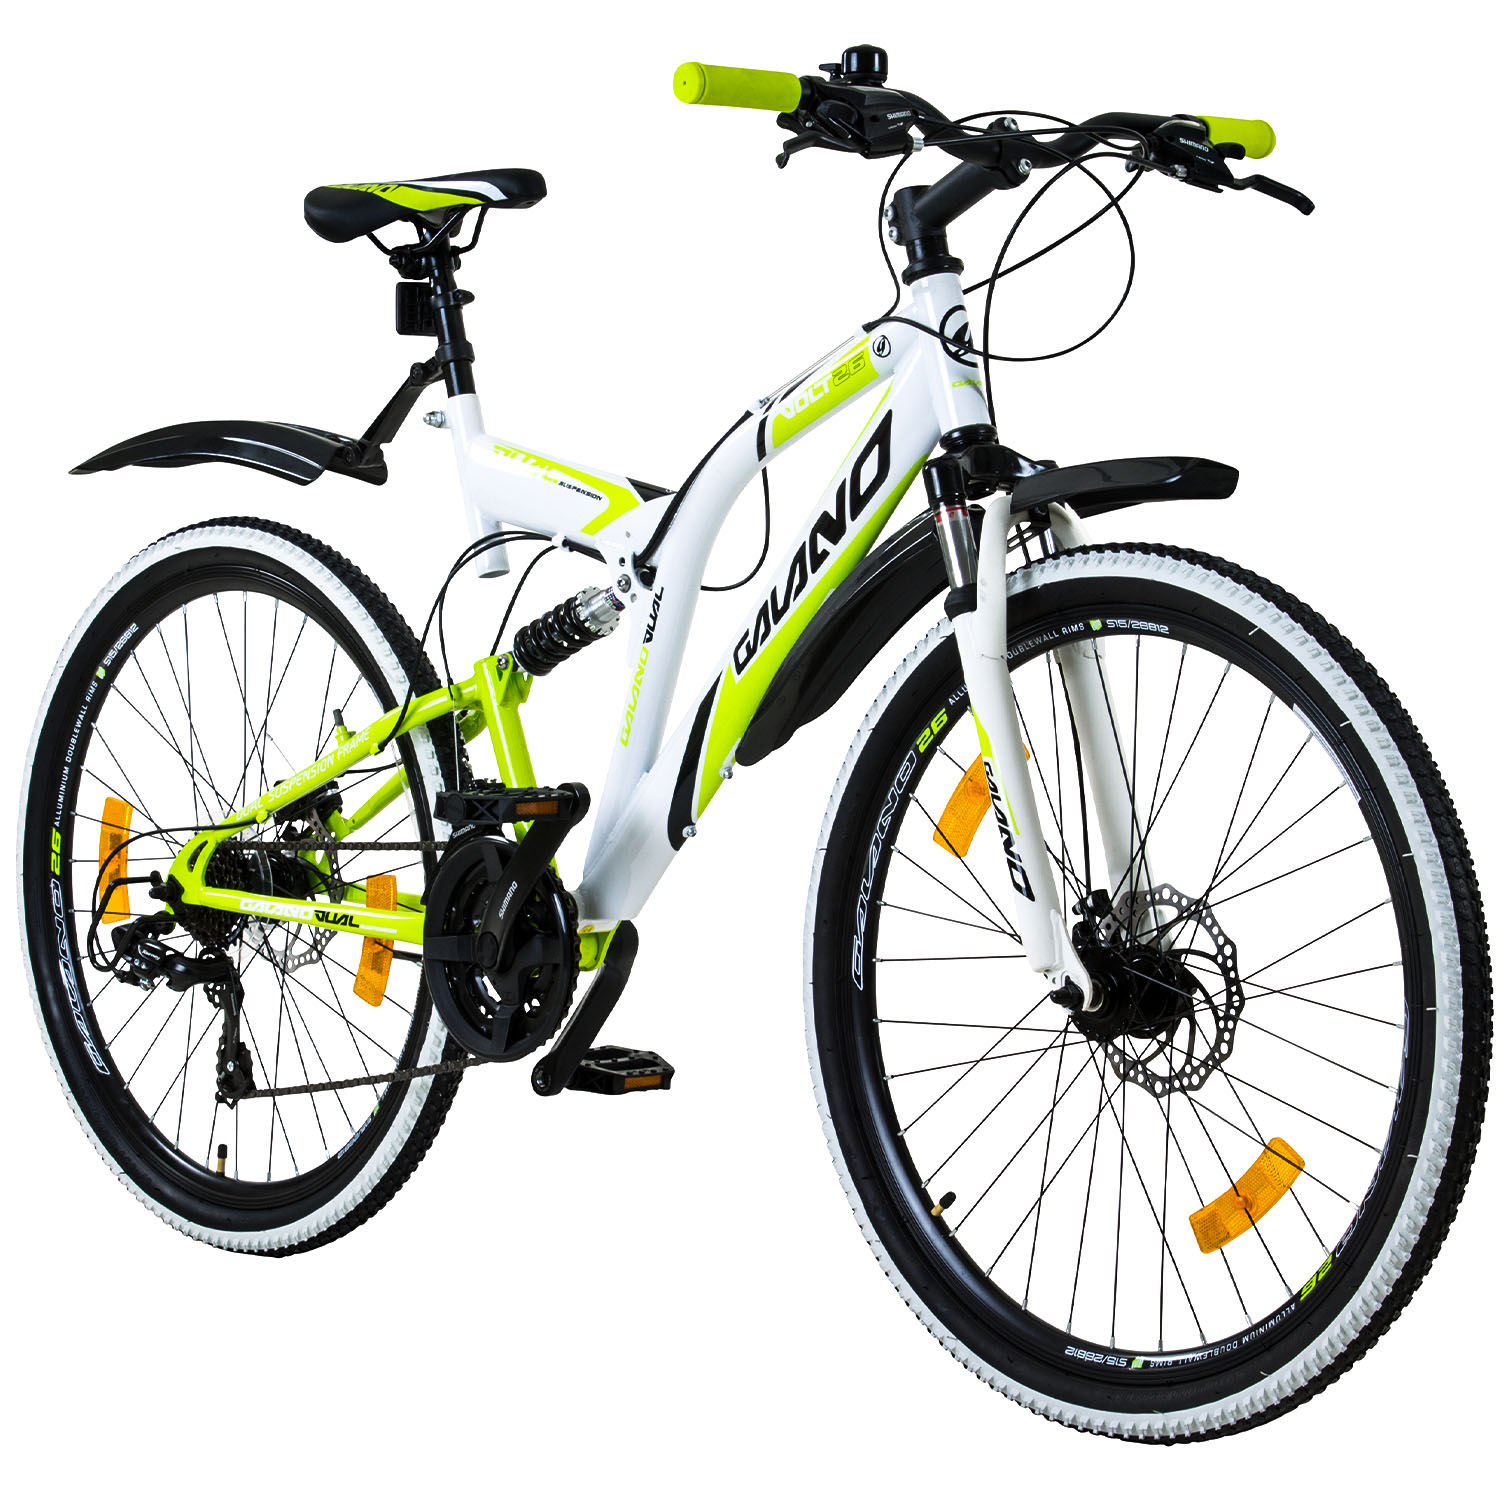 mtb mountain bike 26 inches fully galano volt ds boys 39 bicycle 26 disc brakes ebay. Black Bedroom Furniture Sets. Home Design Ideas